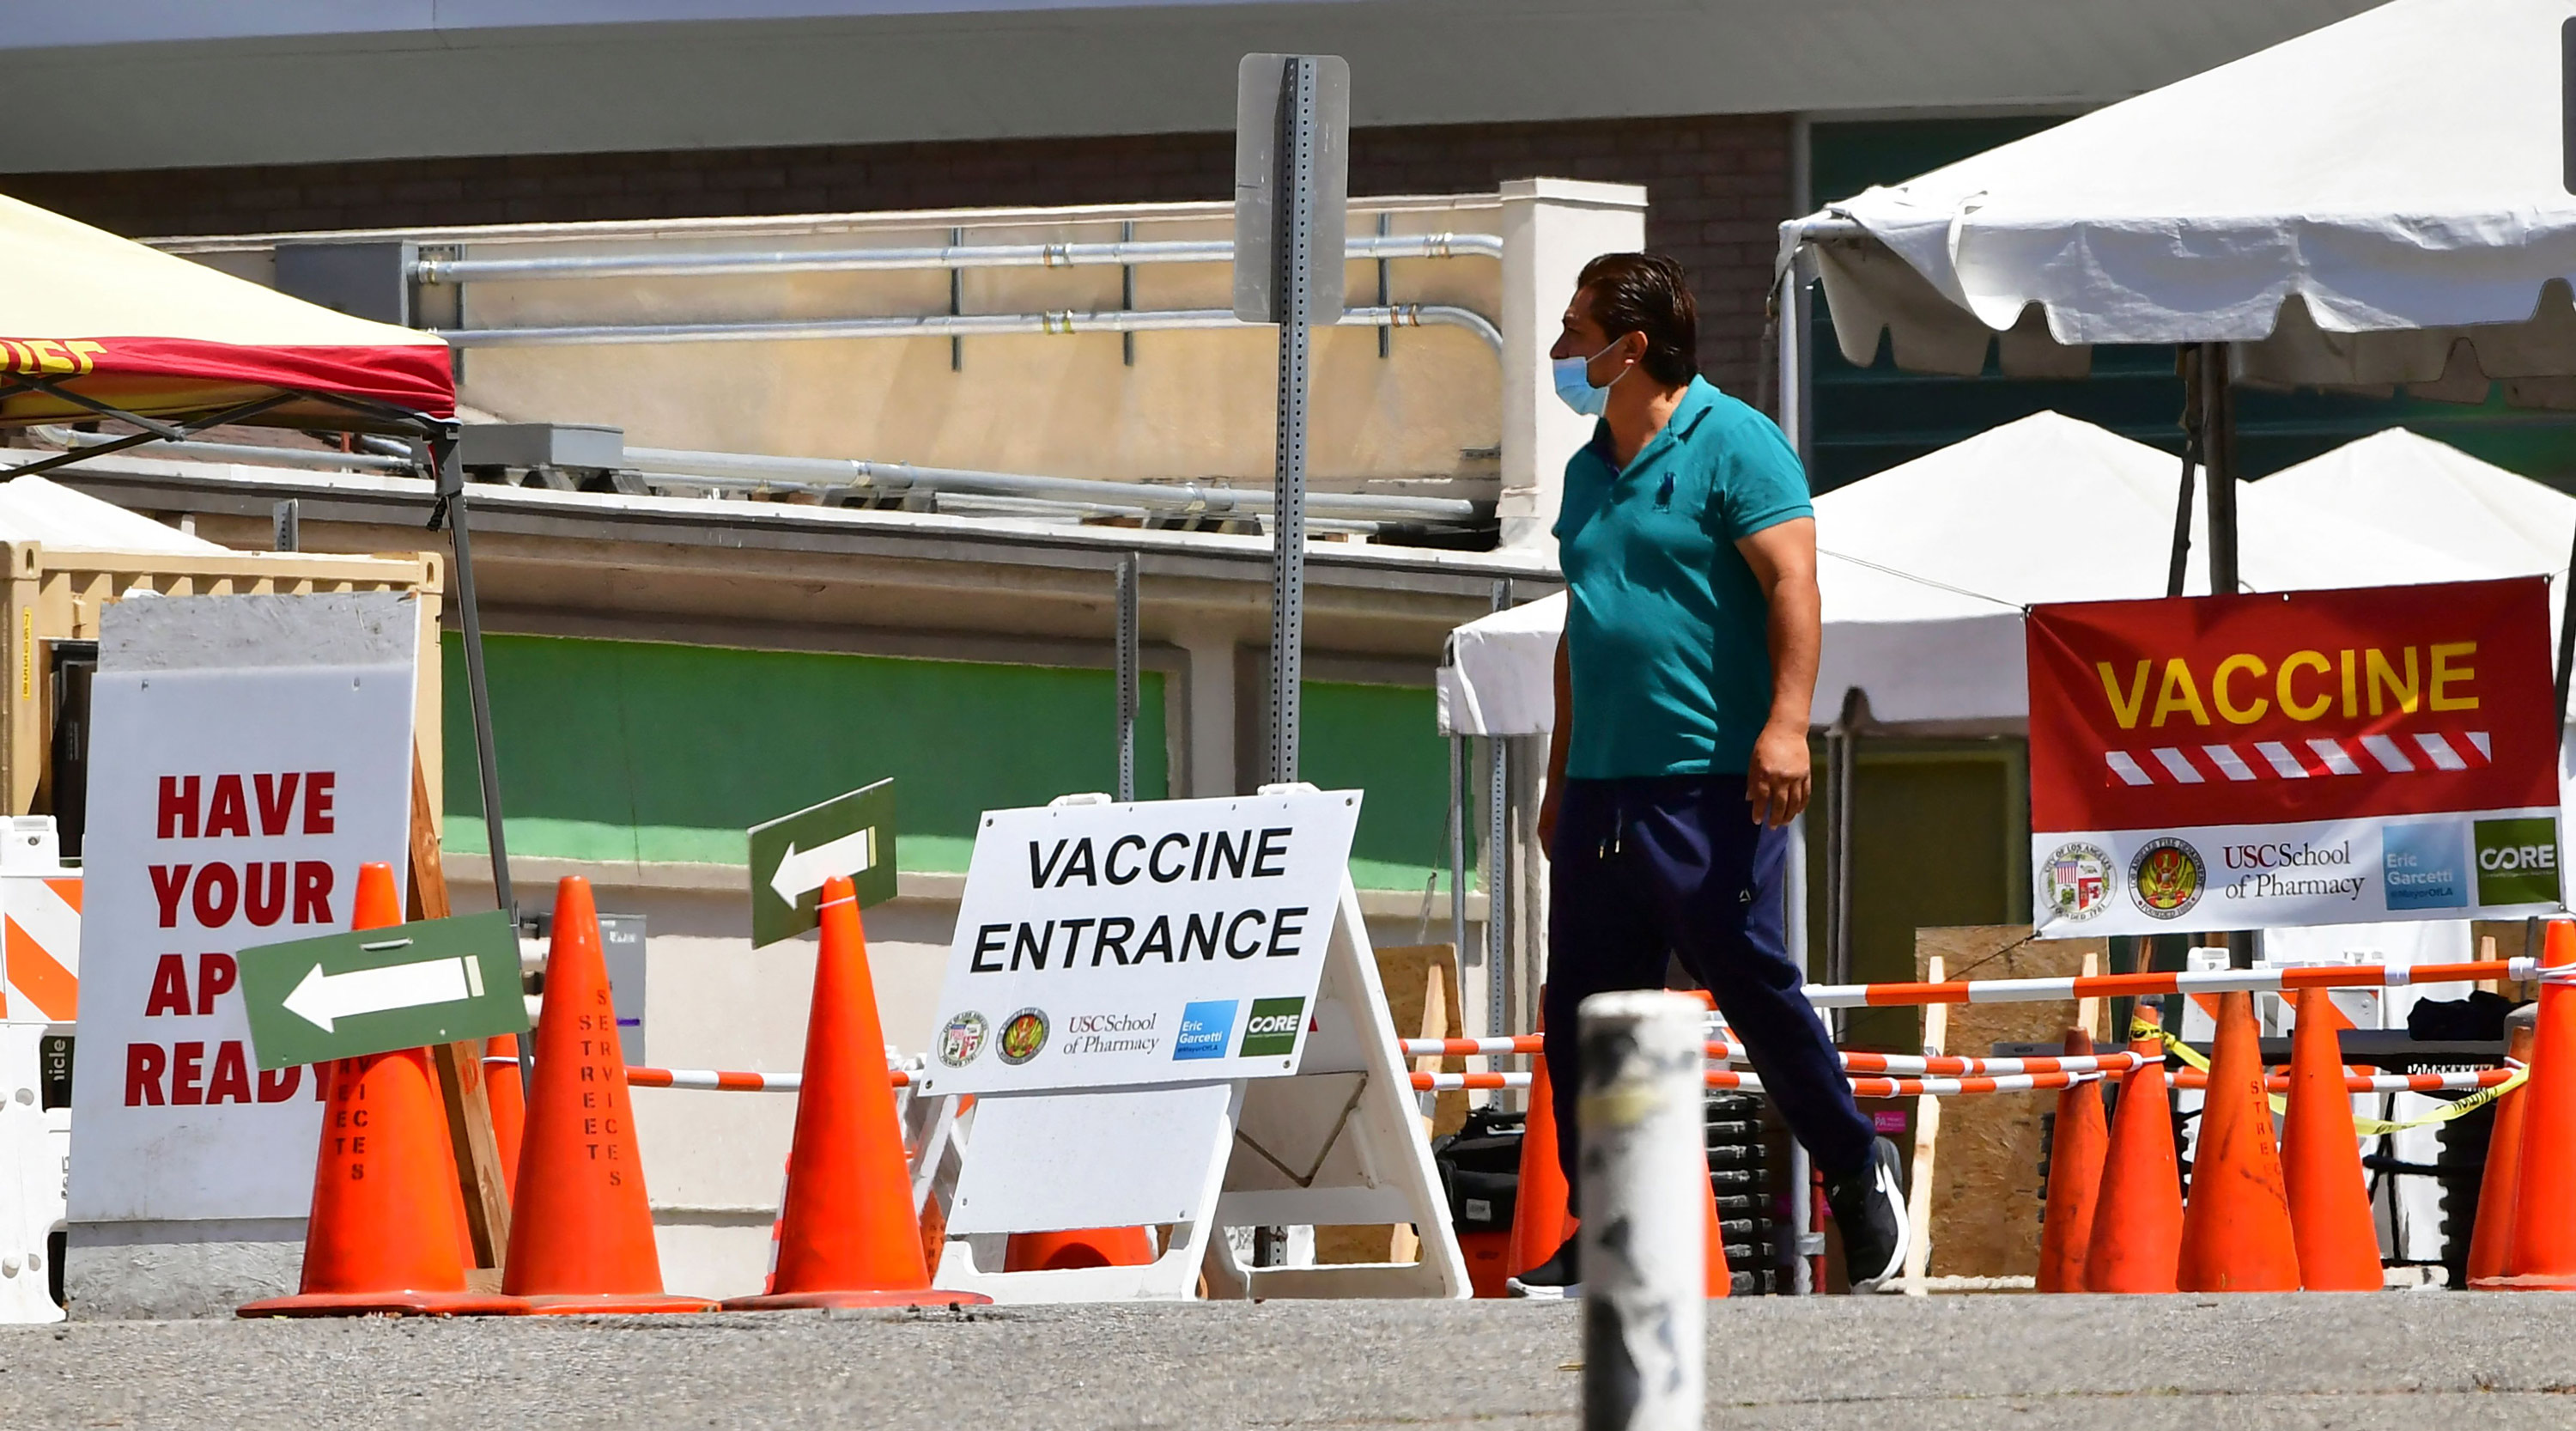 A man arrives at a Covid-19 vaccine facility in Los Angeles on May 3.